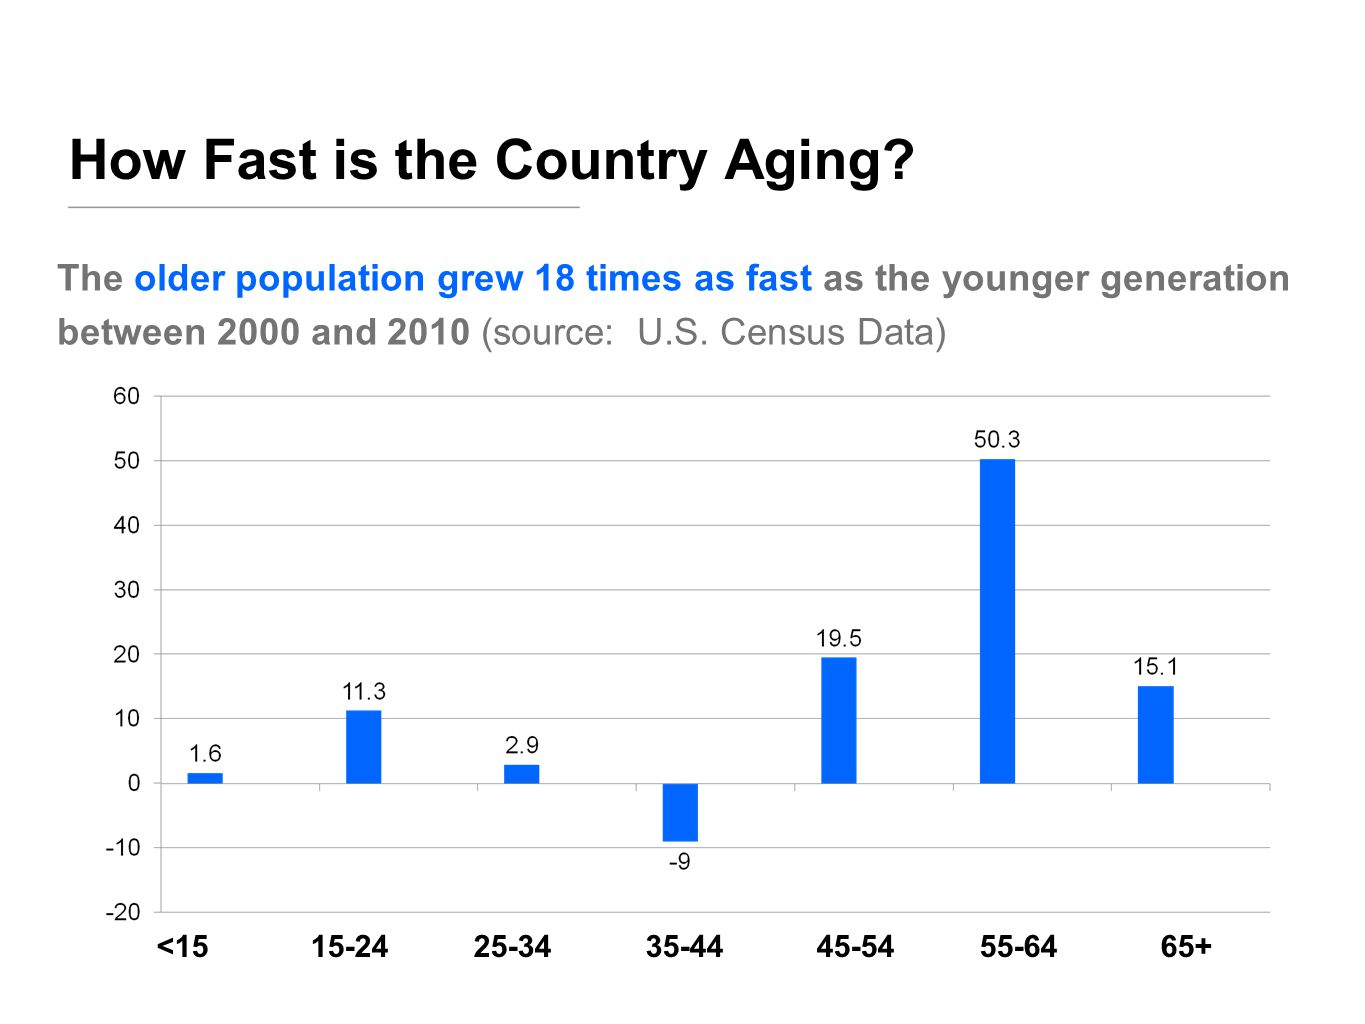 How Fast is the Country Aging.